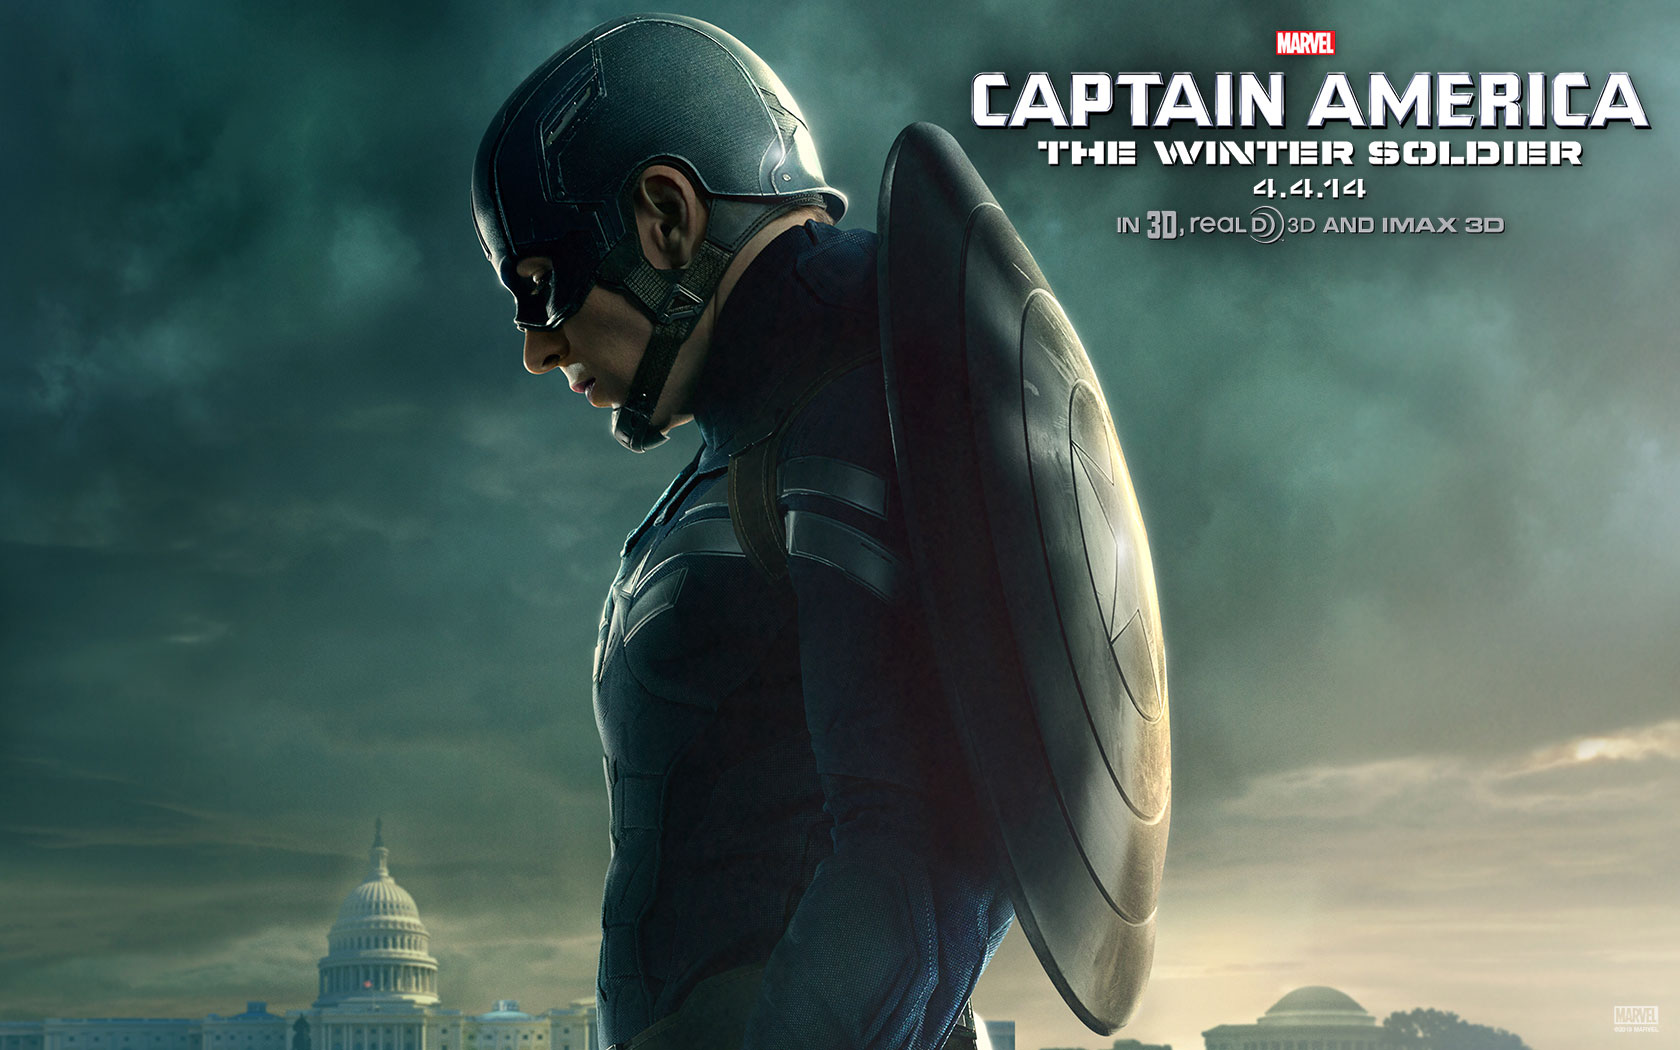 WallpapersWide Captain America Wallpapers Free Download 1680x1050